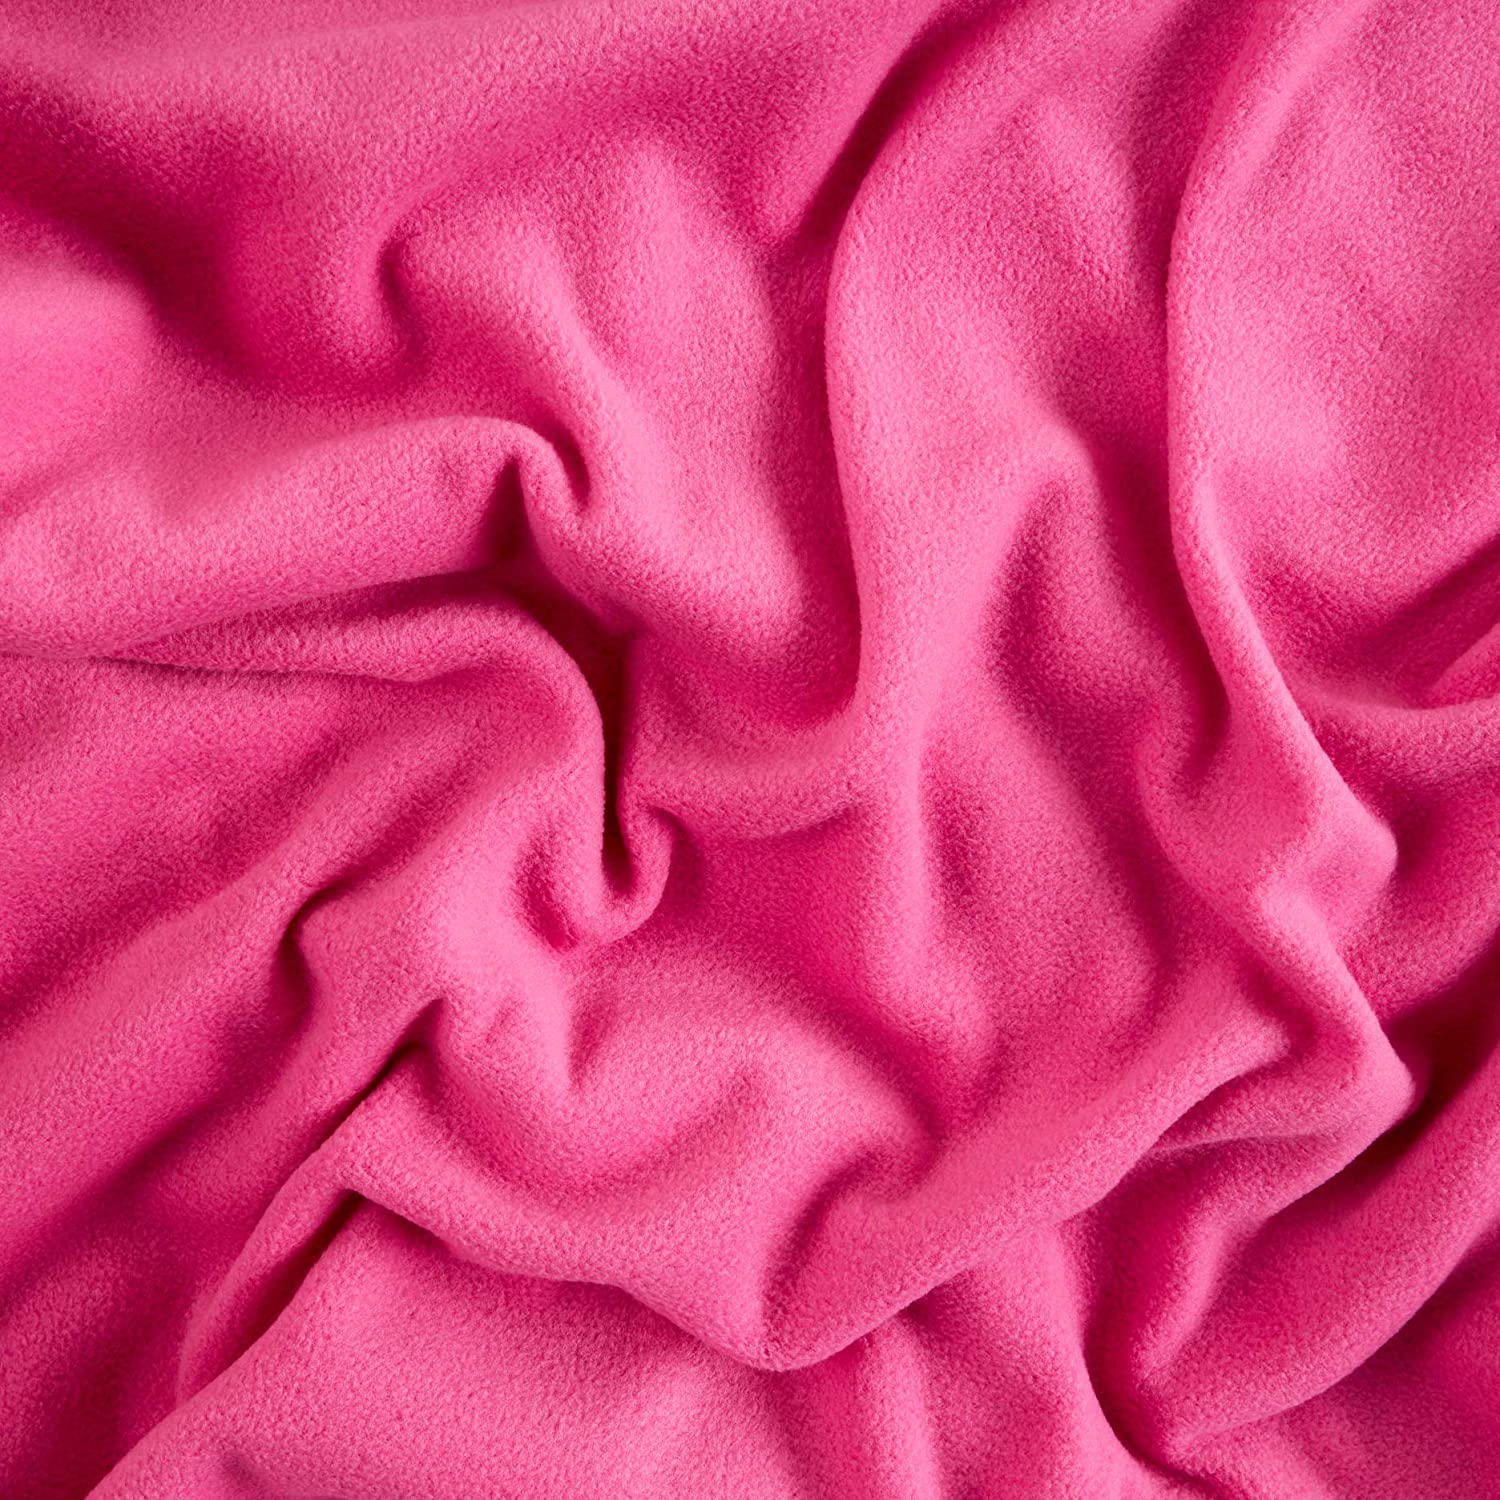 Baum Textiles Winterfleece Micro Chamois Pink Lightning Fabric By The Yard Pink Lightning